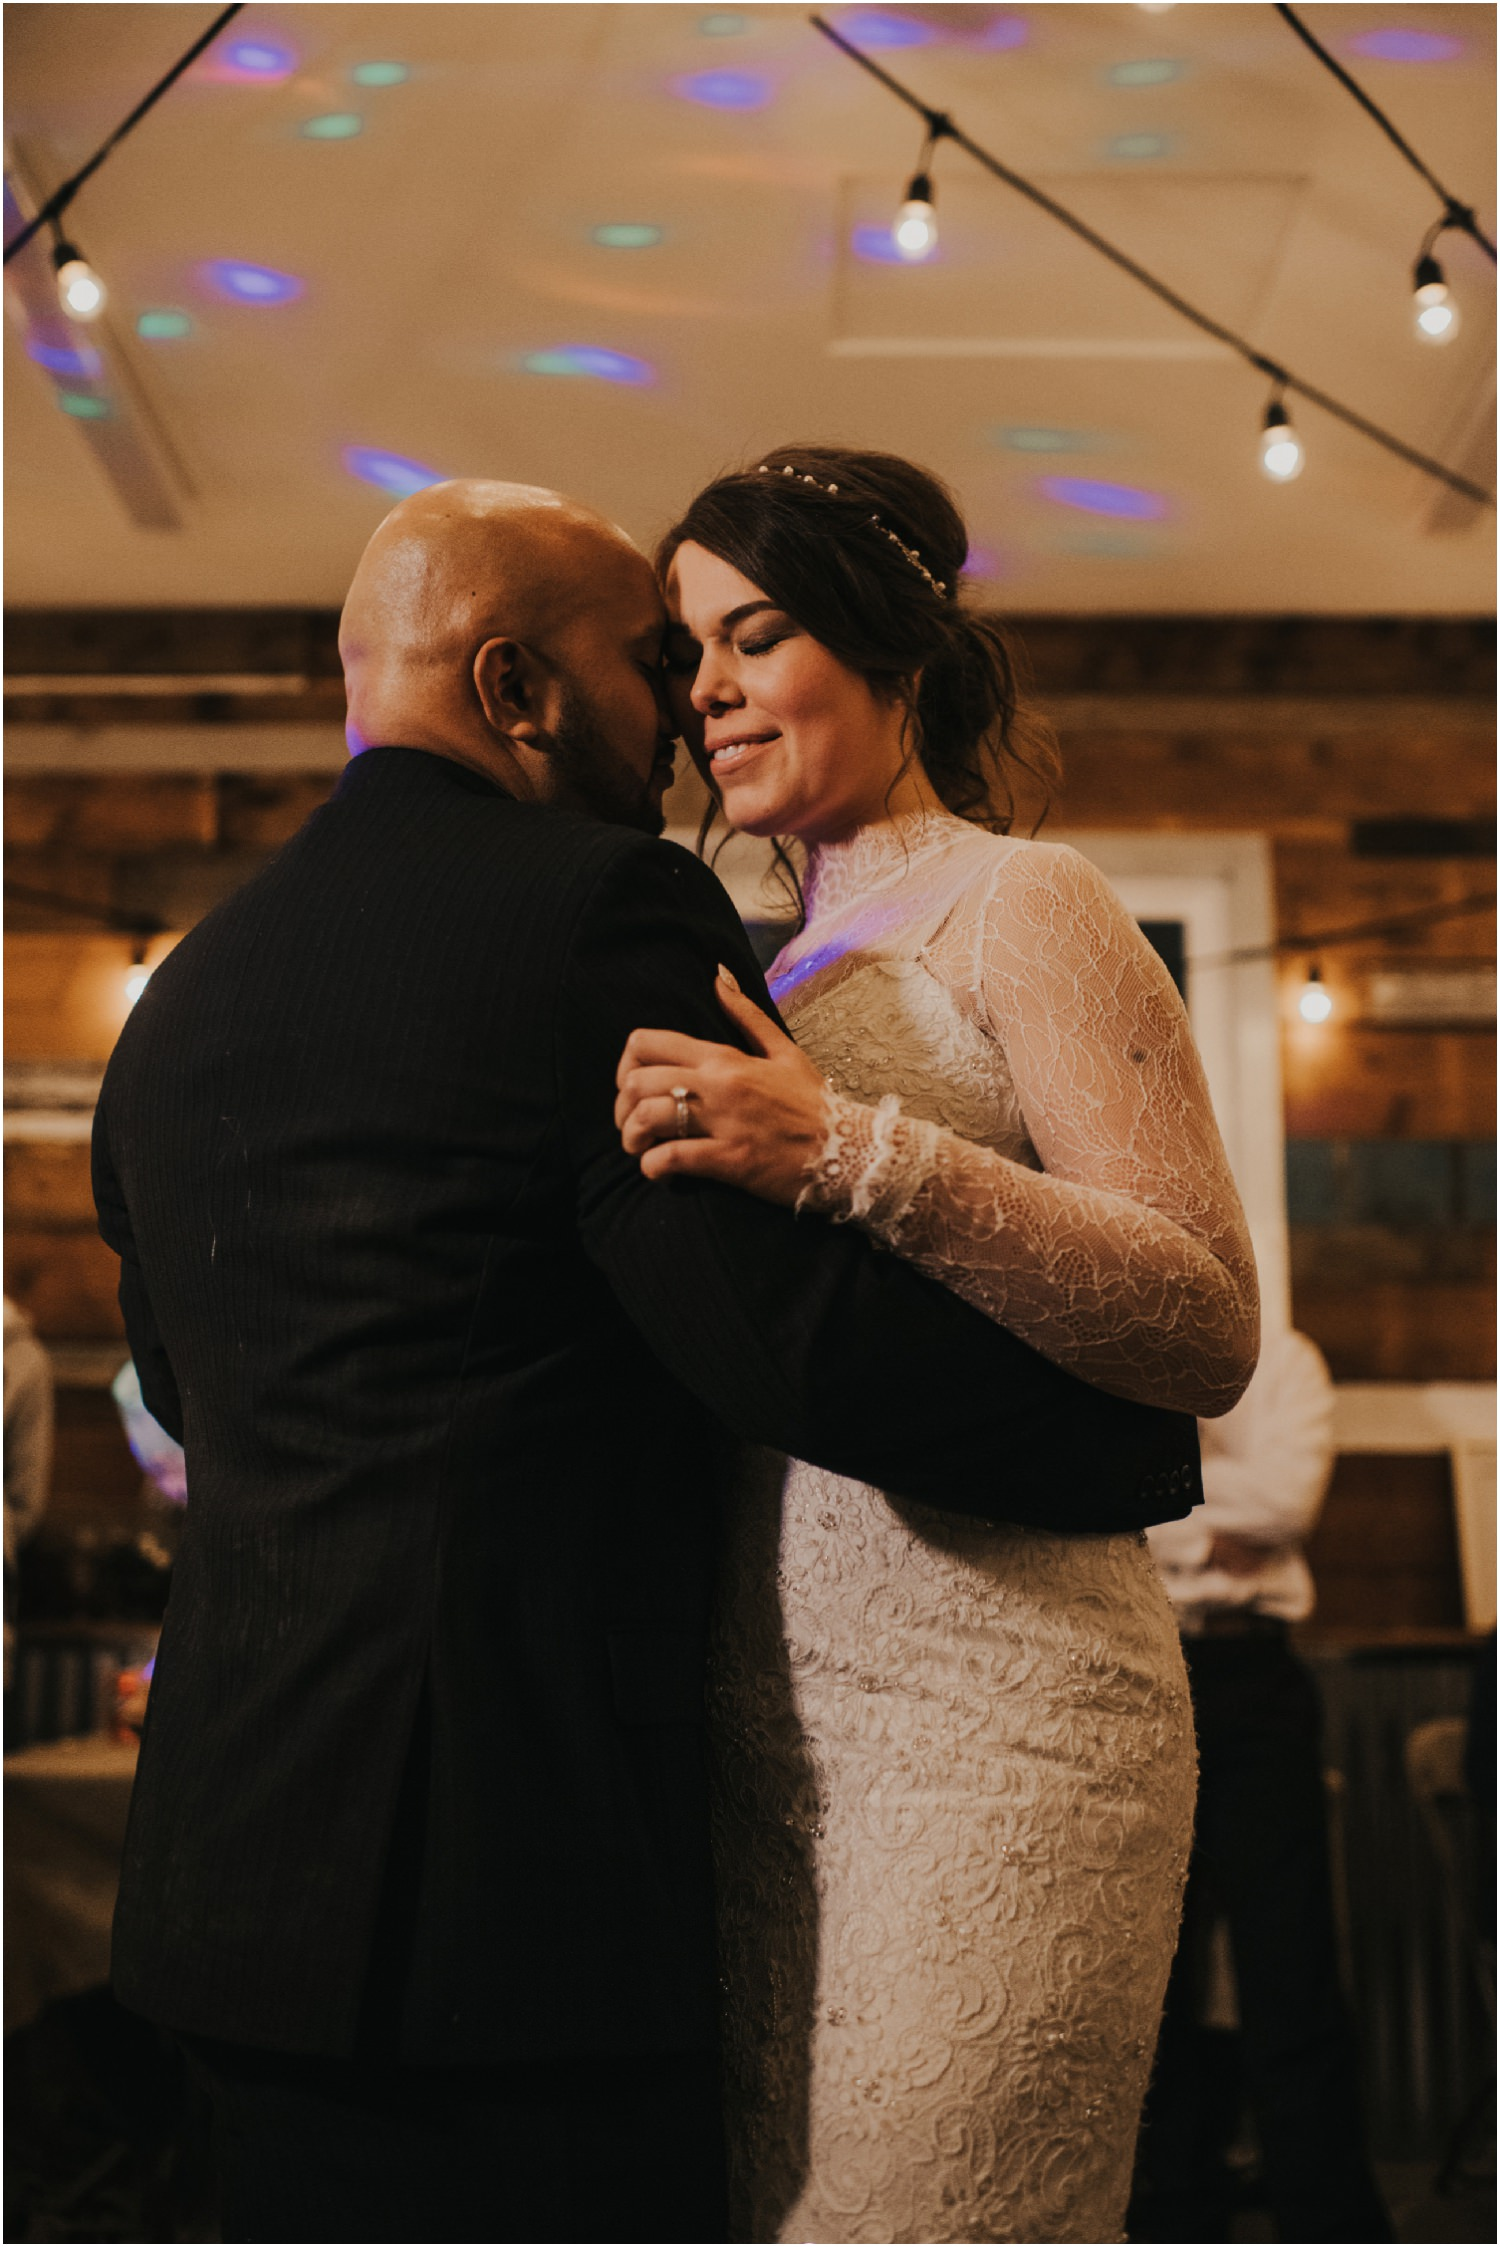 Kelowna Winter Wedding - Joelsview Photography_0142